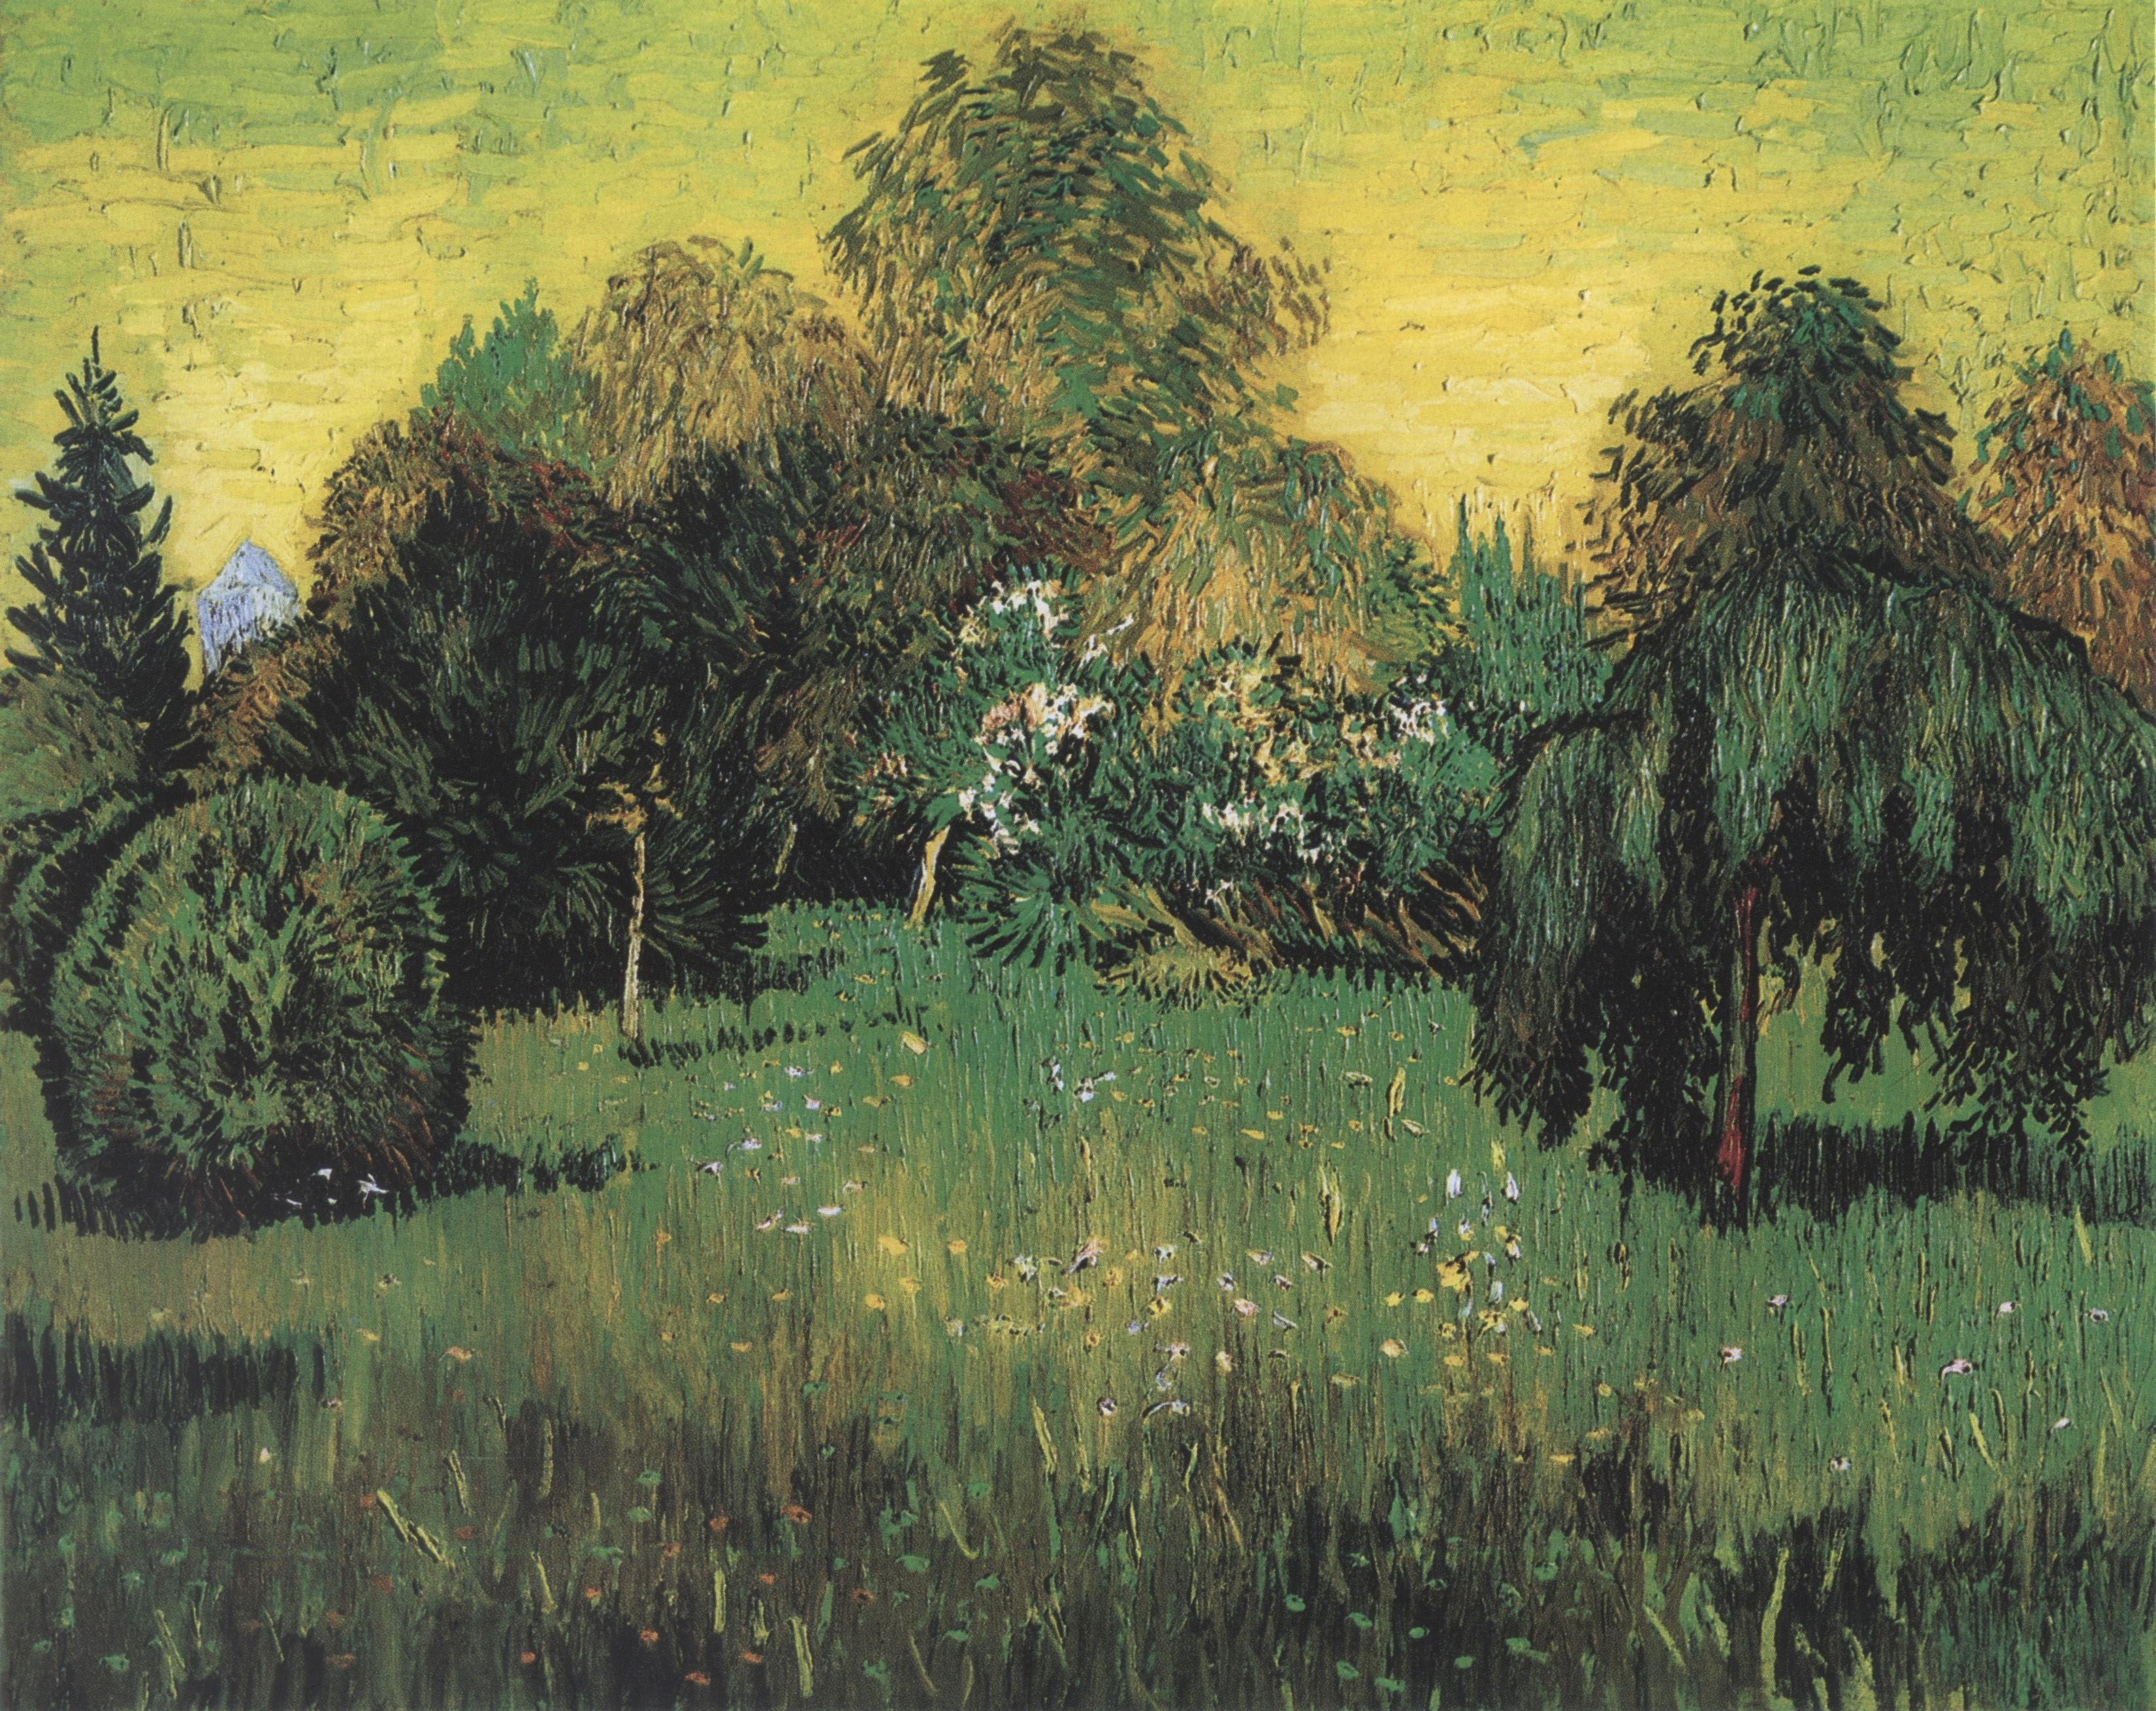 519 Public Park With Weeping Willow The Poet S Garden I Arles 1888